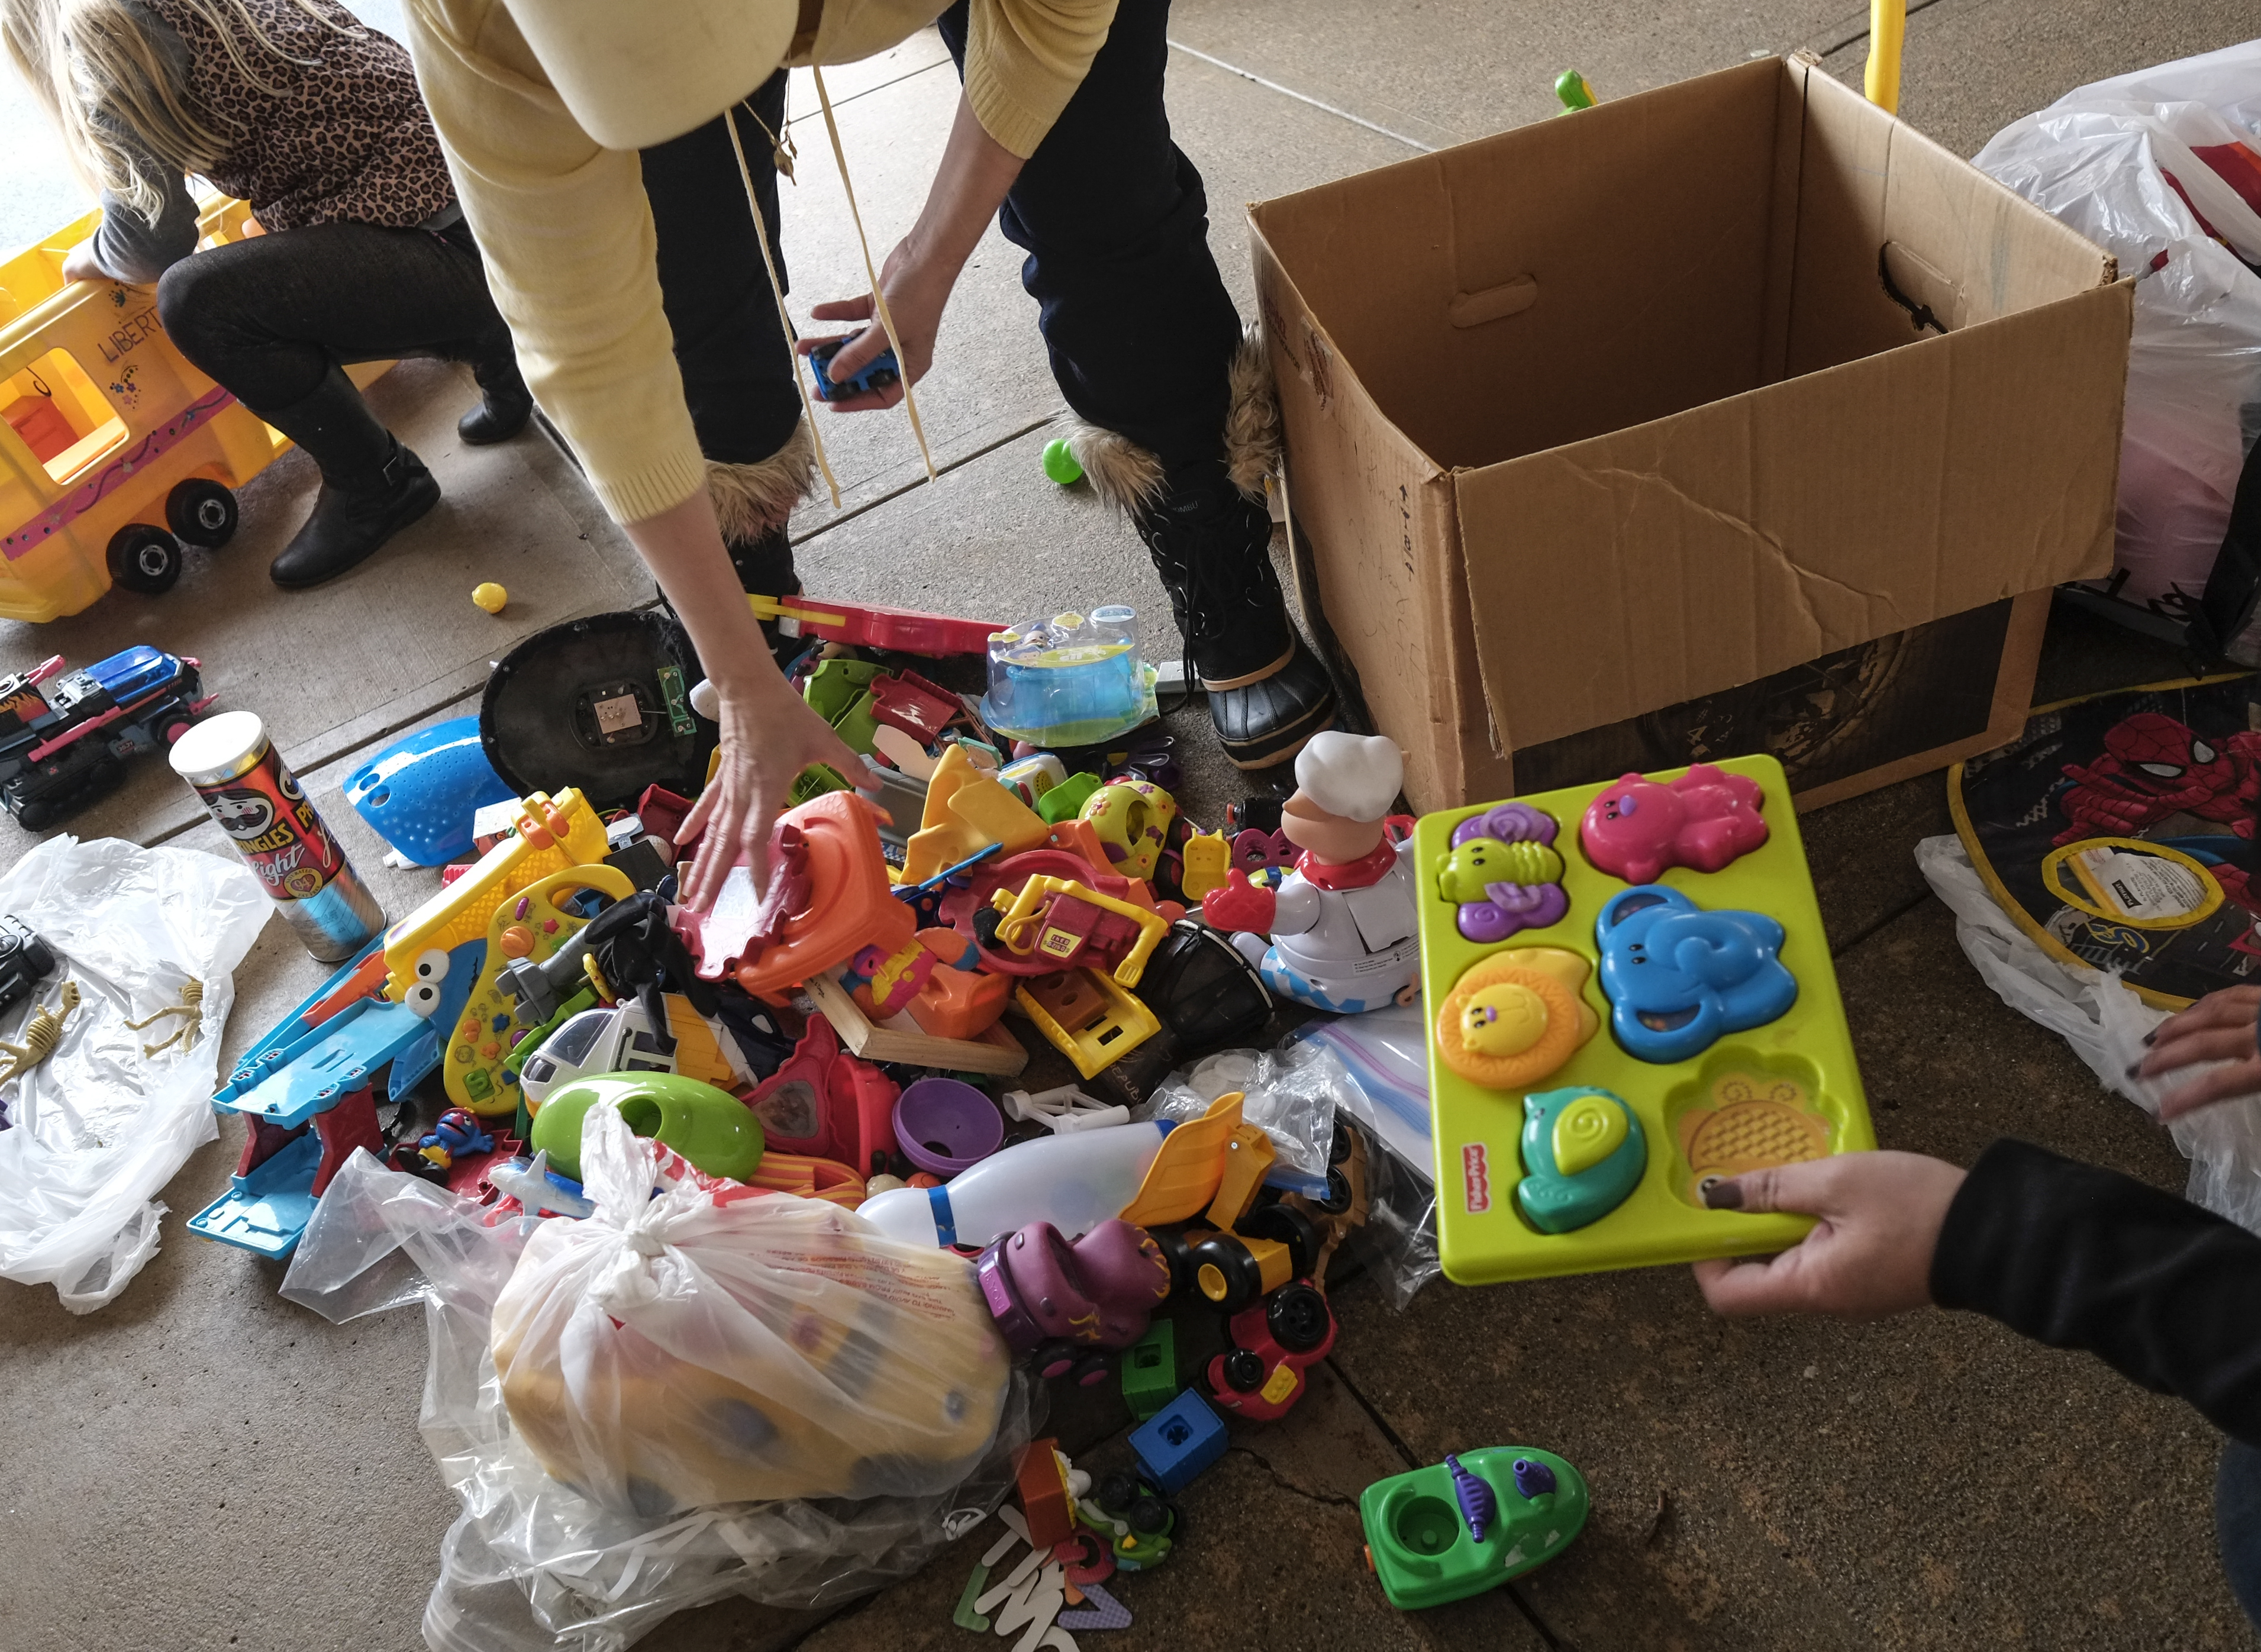 Gently Used Toys : Locals donate gently used toys at levis commons the blade